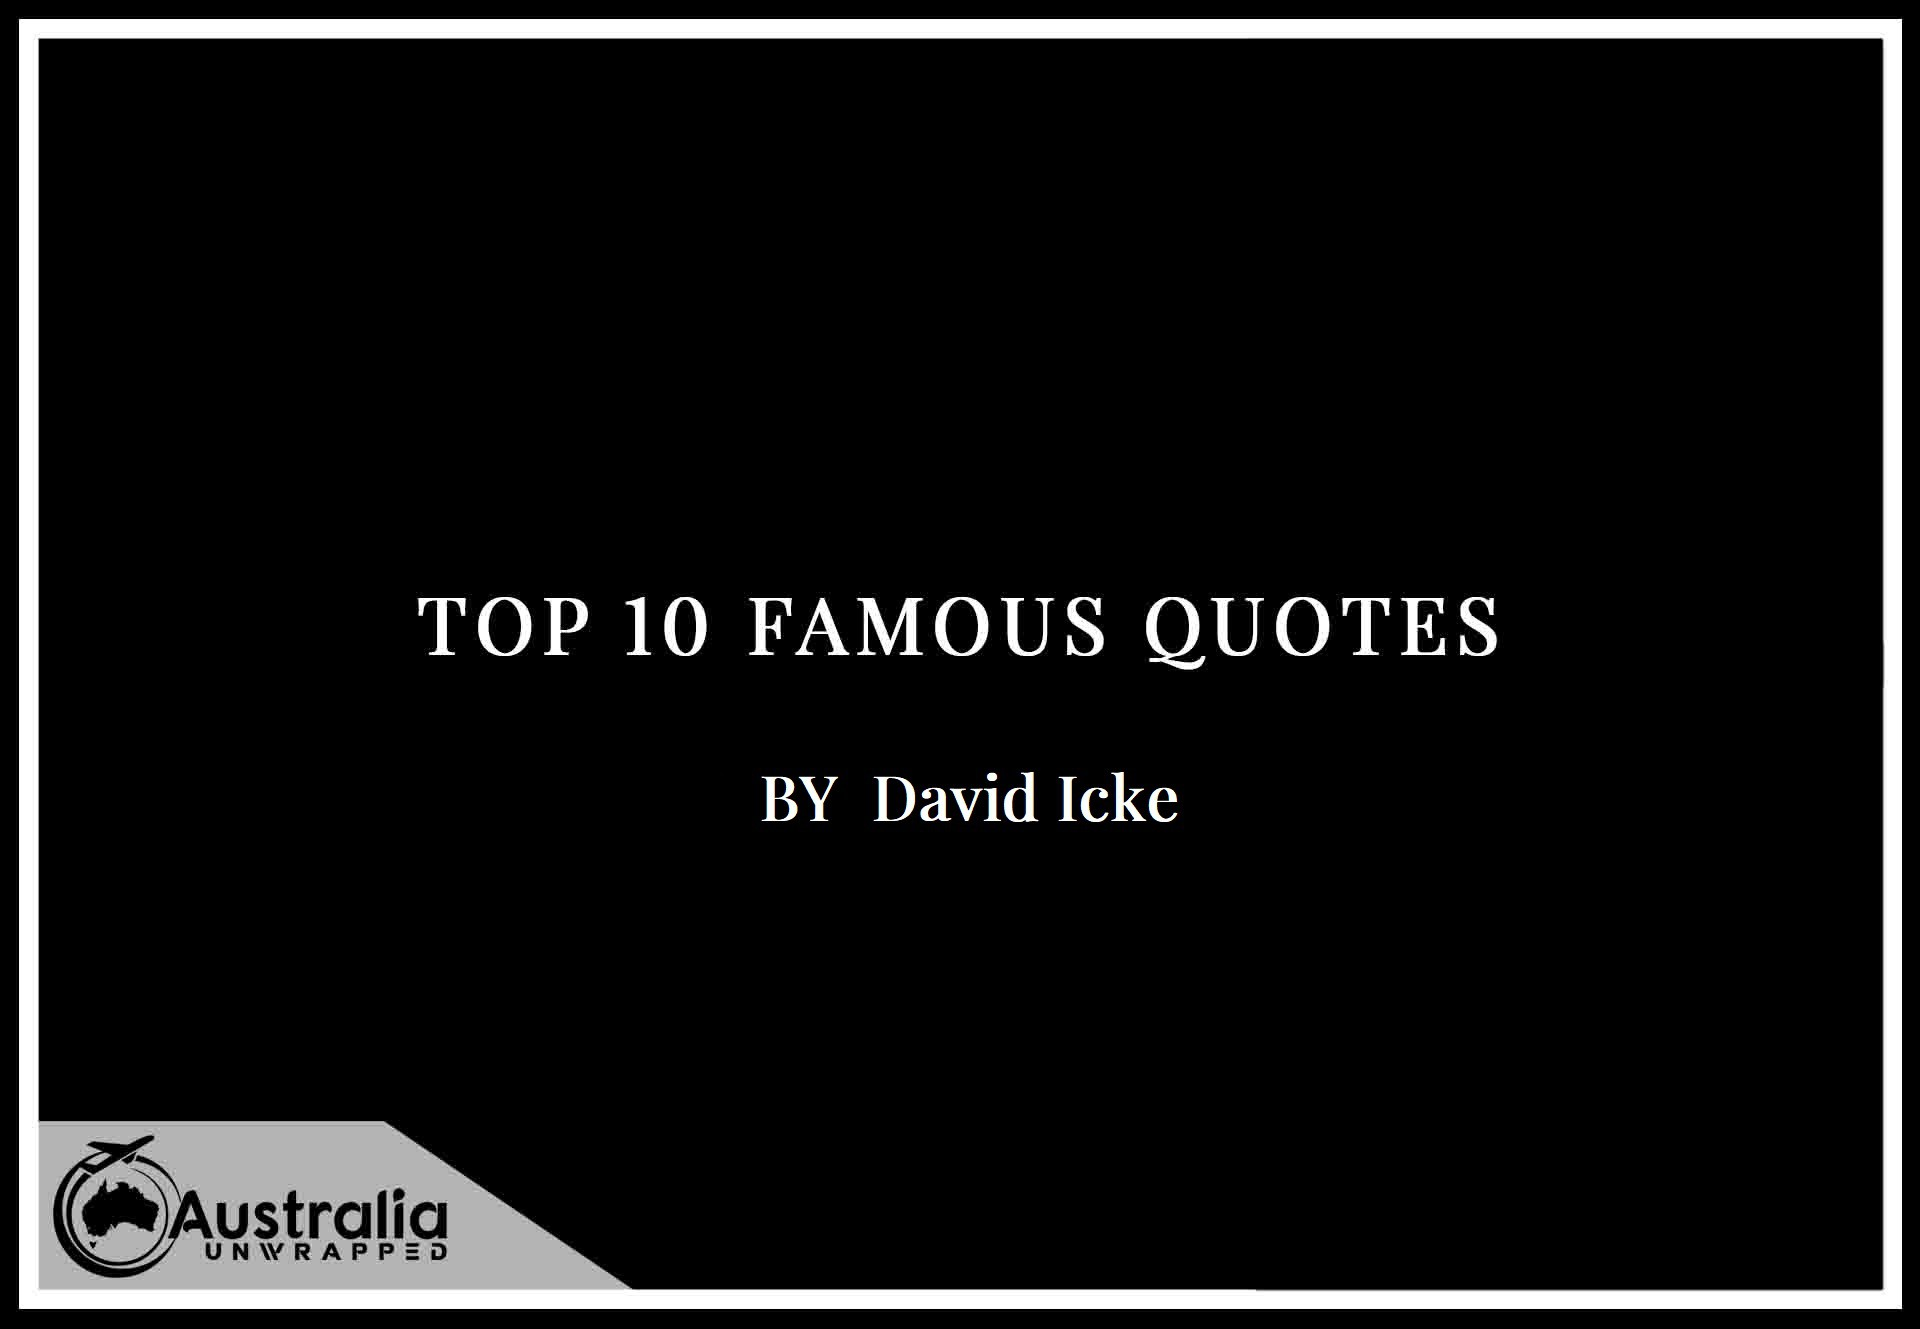 David Icke's Top 10 Popular and Famous Quotes